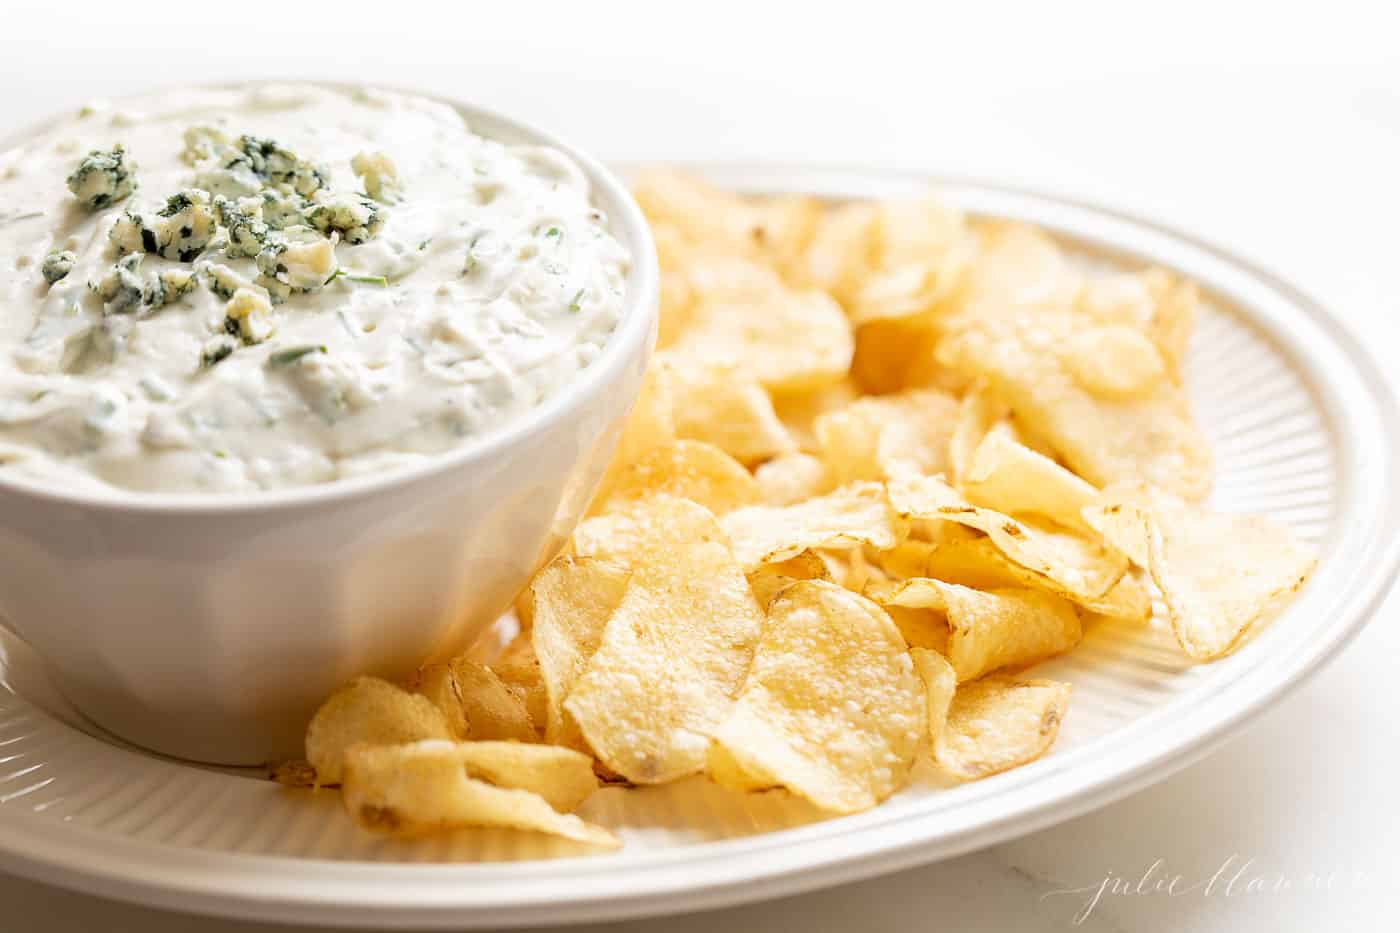 dip in bowl on platter with chips